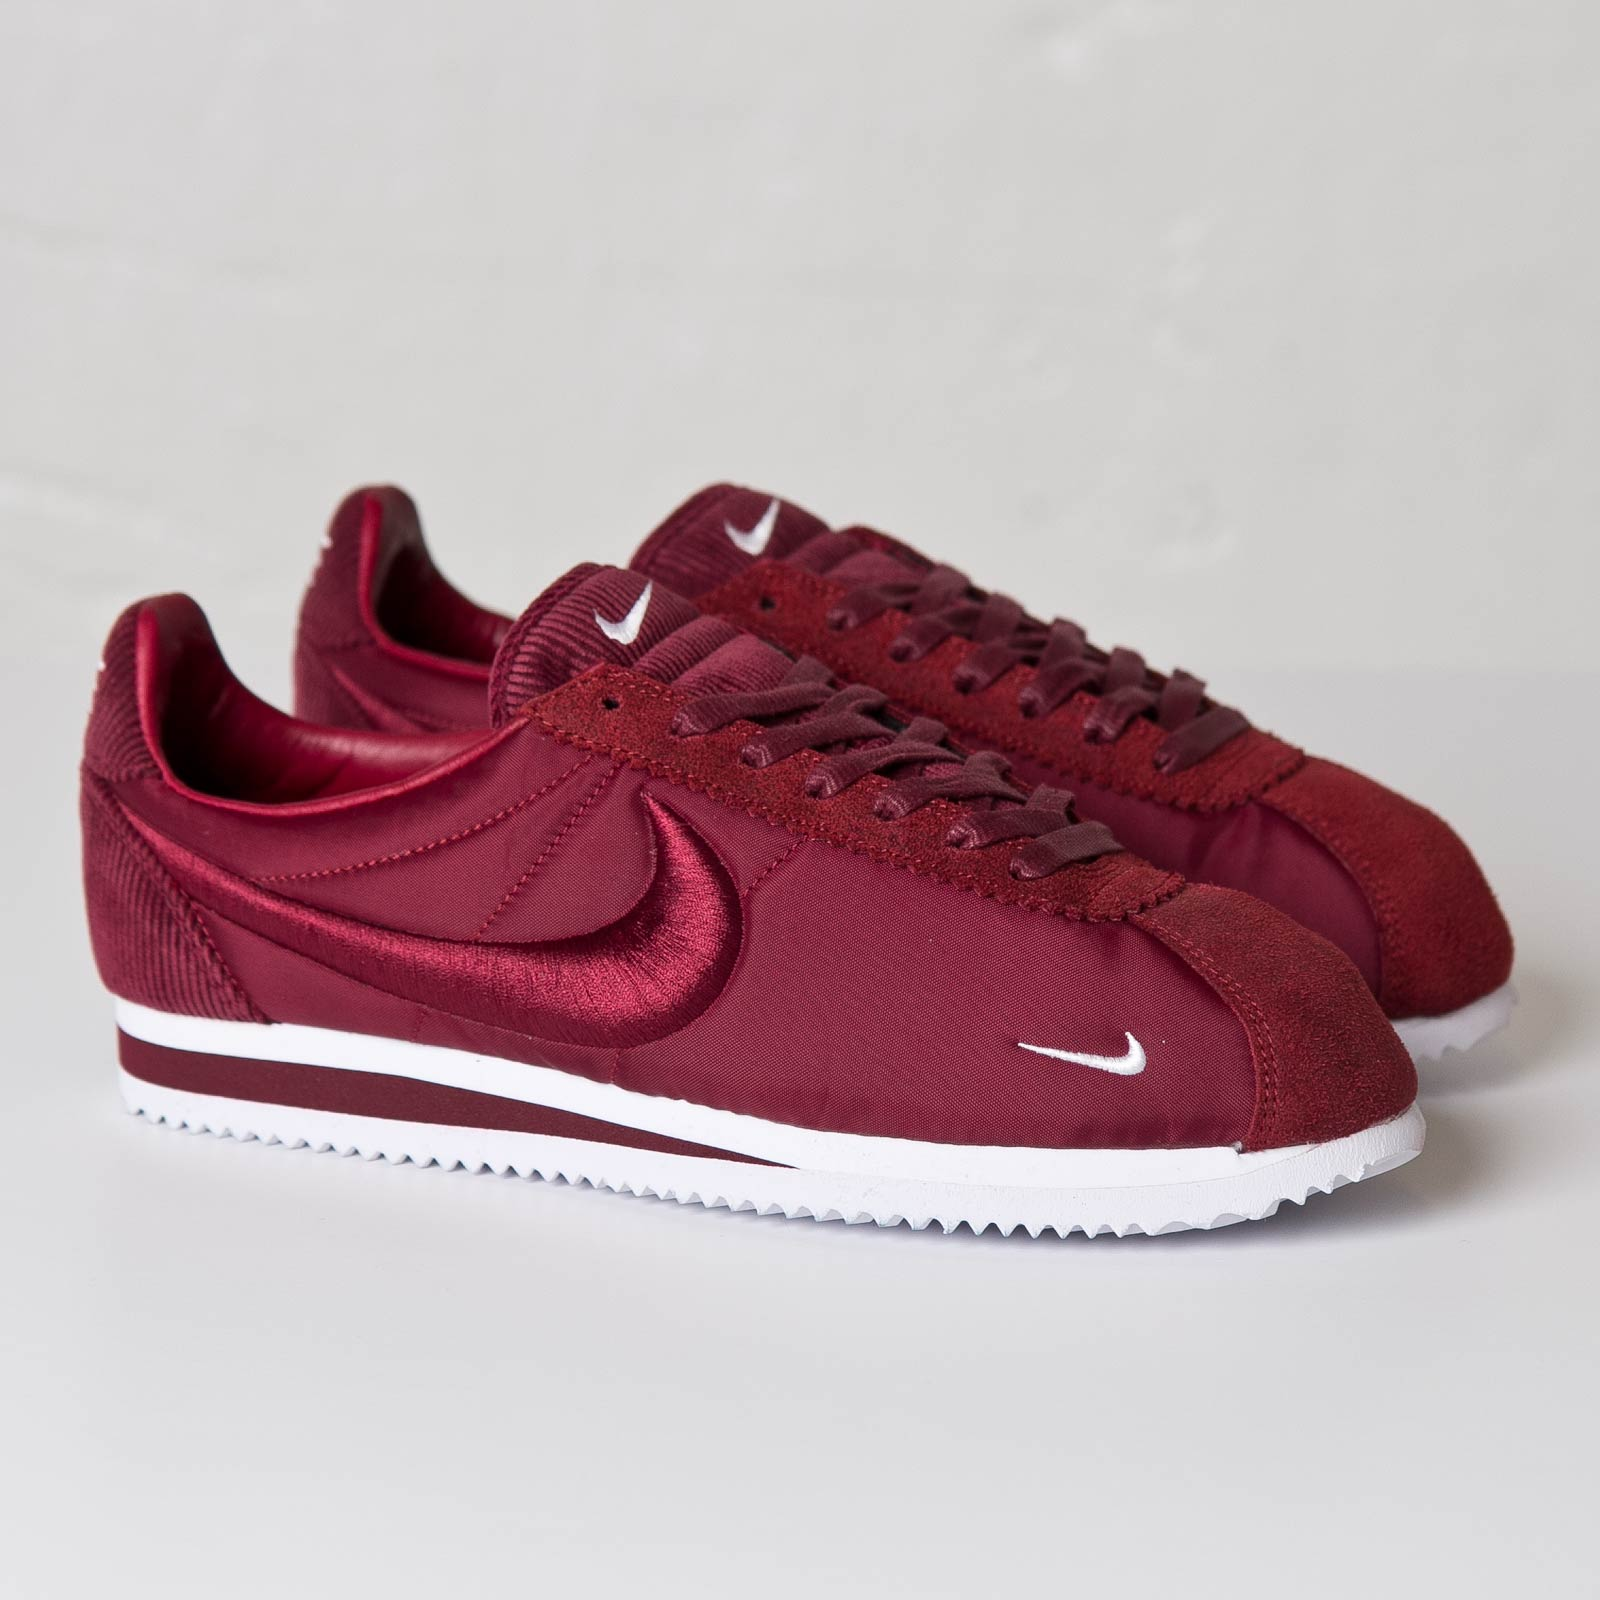 low priced 44f19 d0fd7 ... spain nike classic cortez sp 9e306 e519a